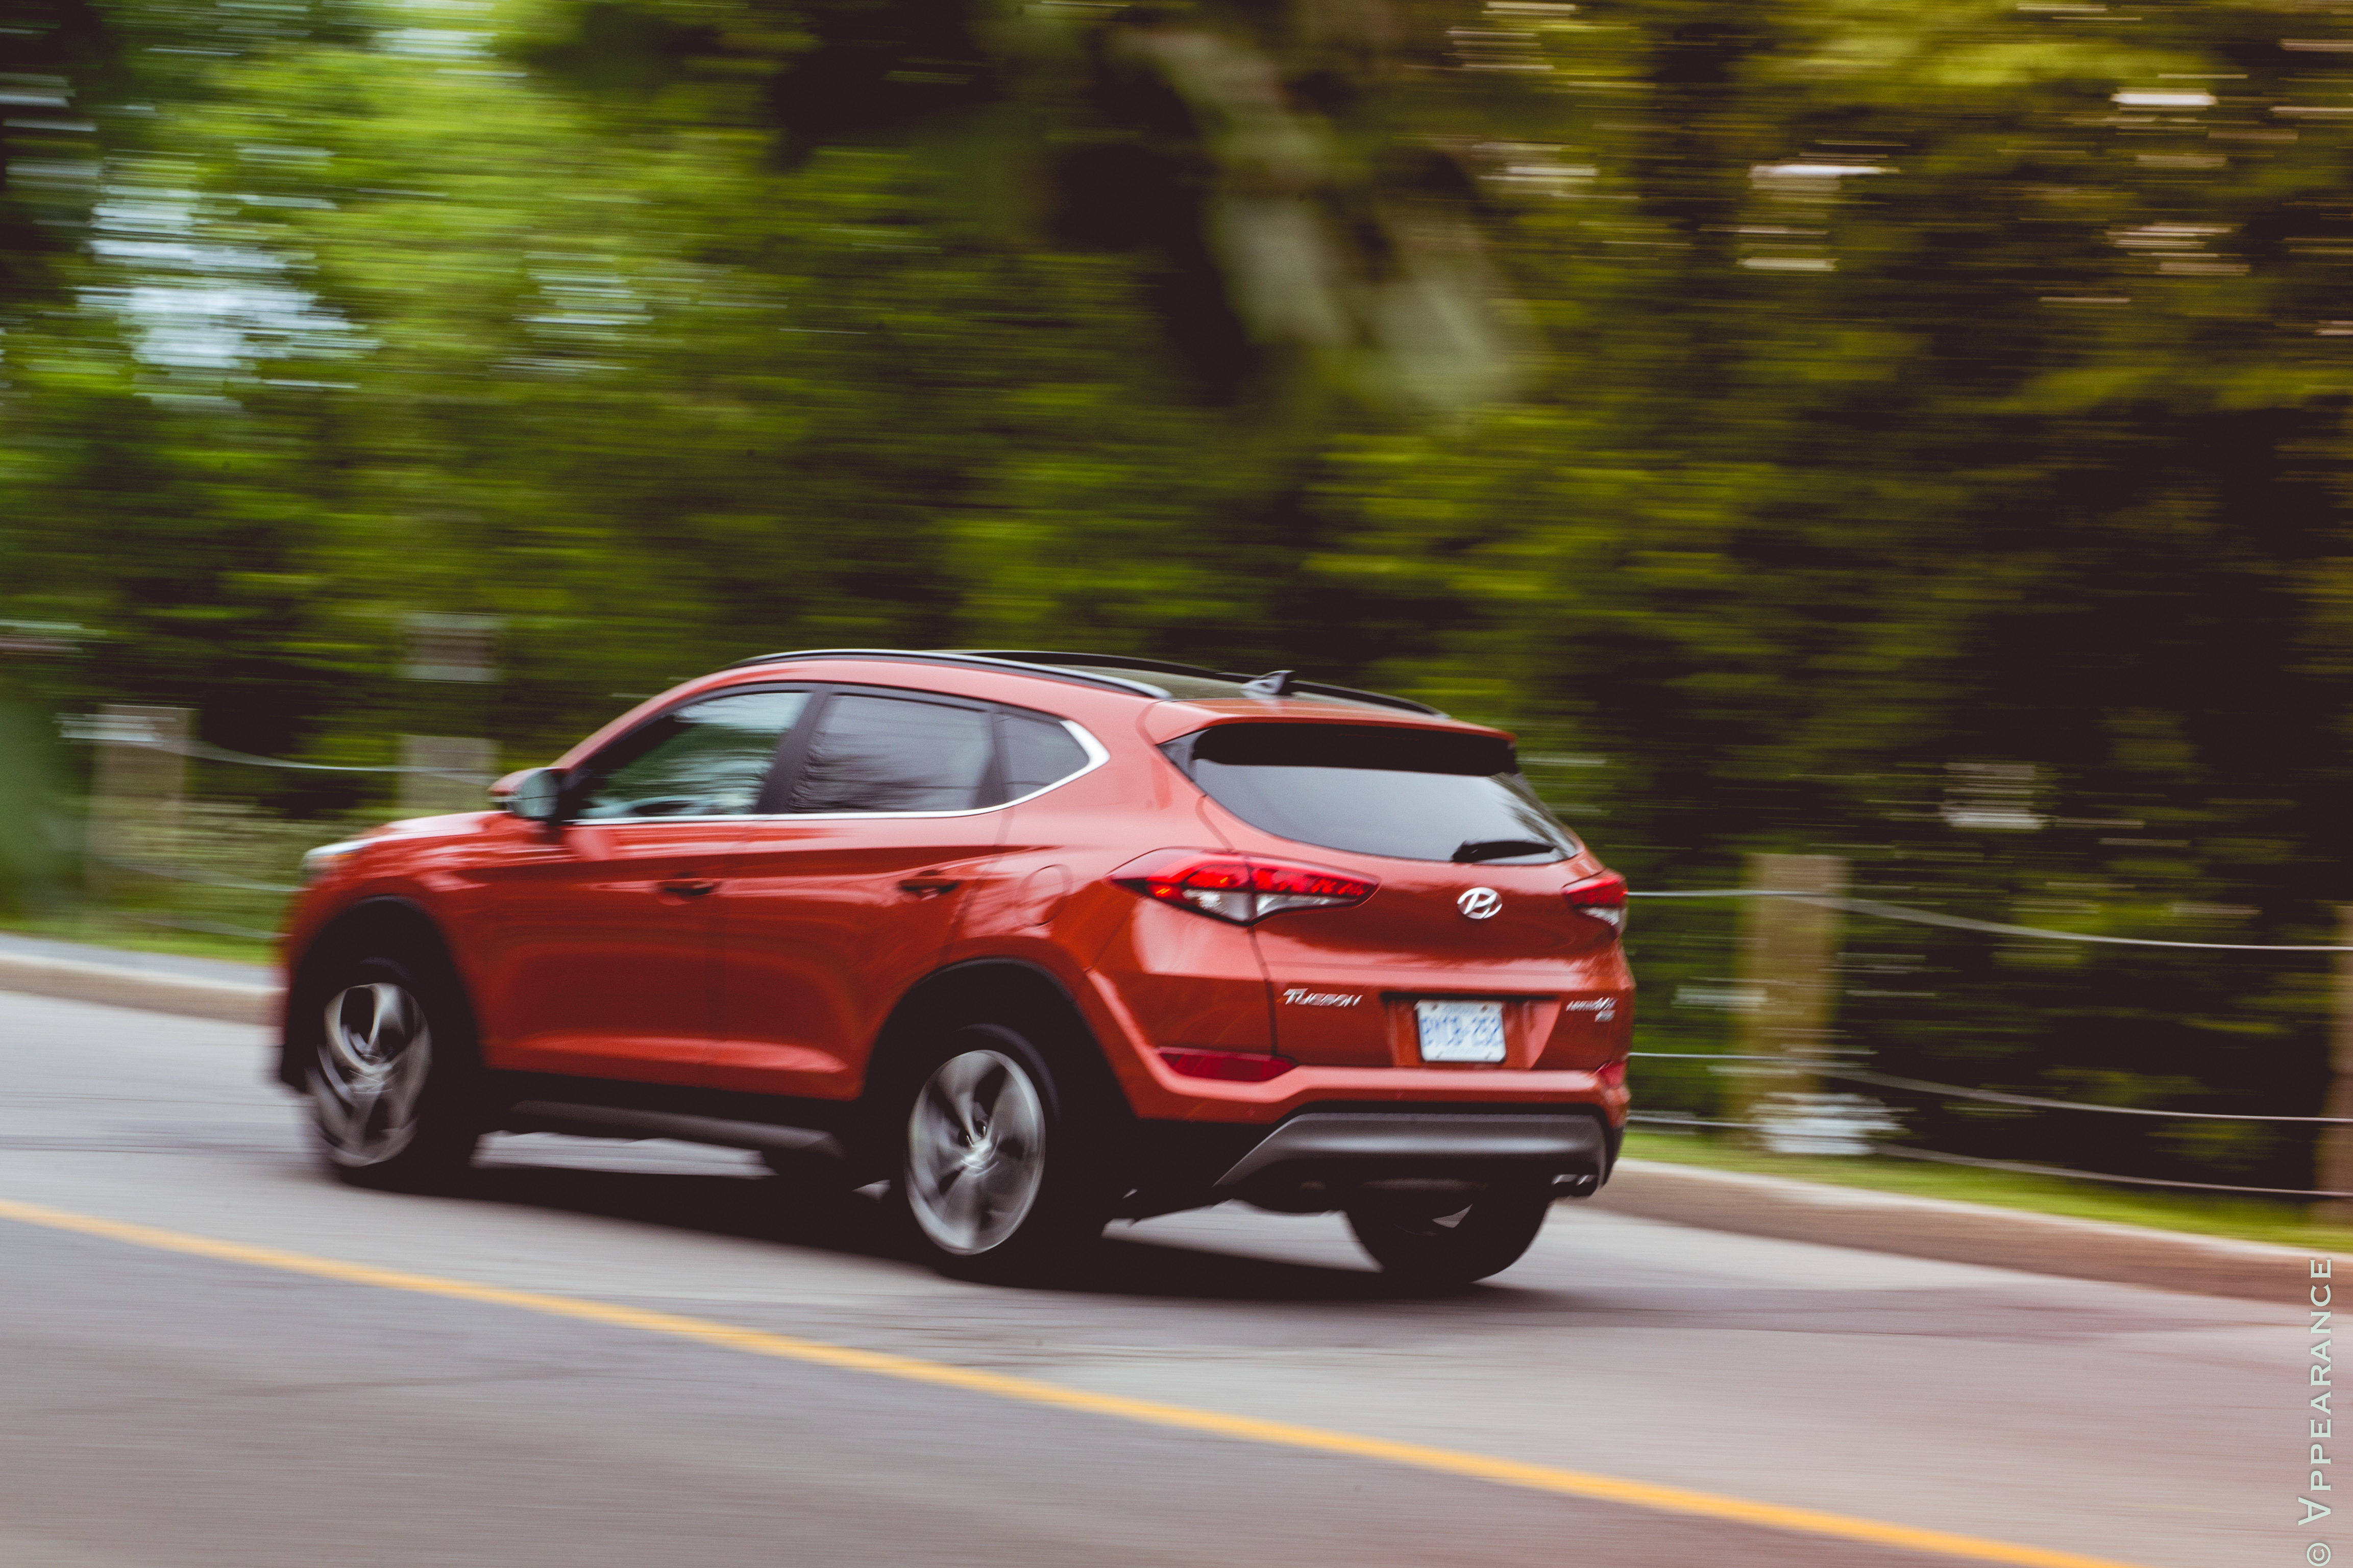 2017 hyundai tucson quick reference guide